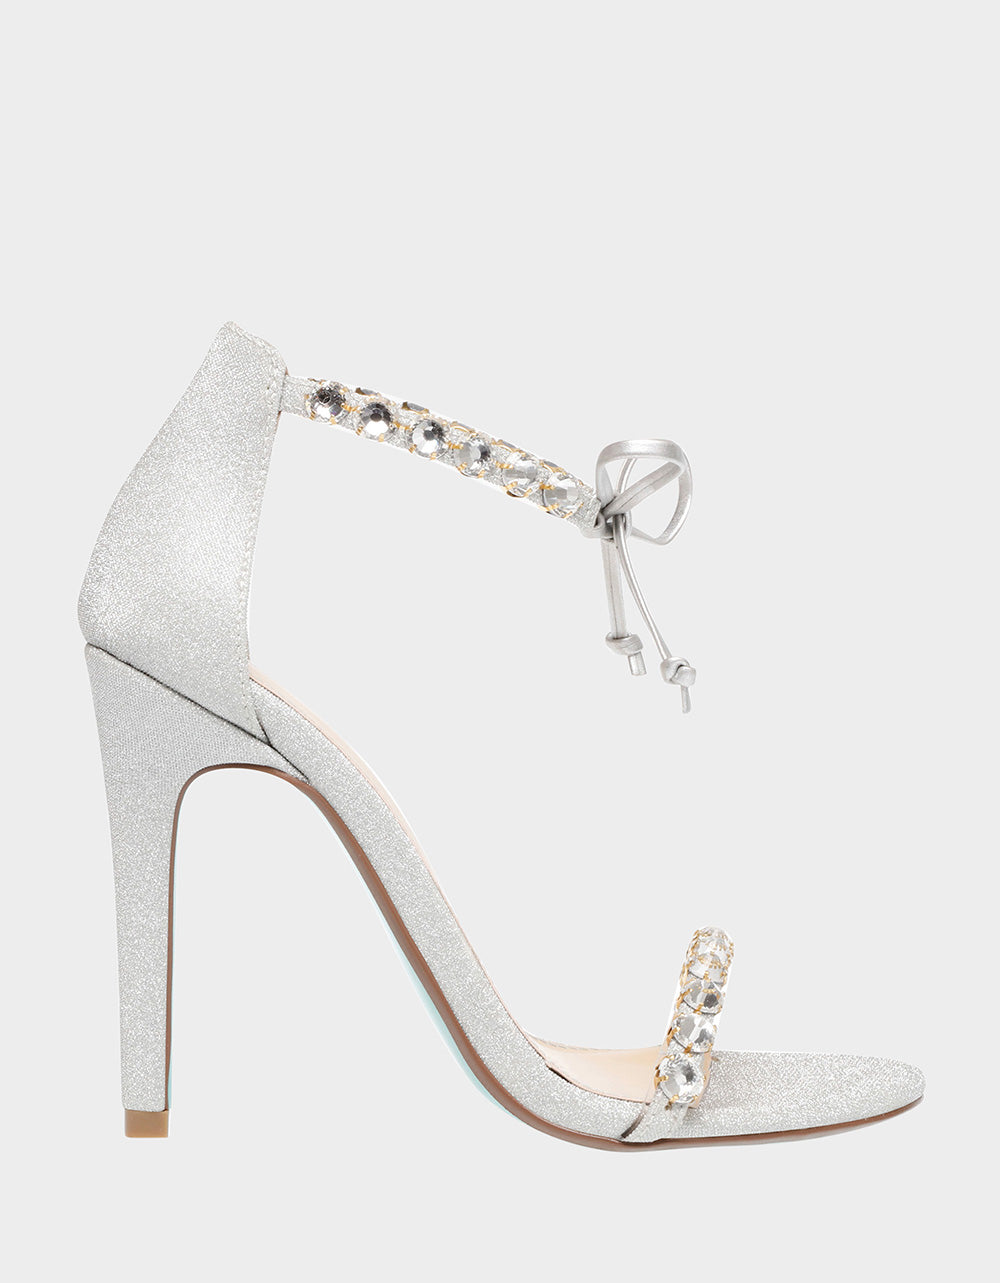 SB-GILLY SILVER - SHOES - Betsey Johnson